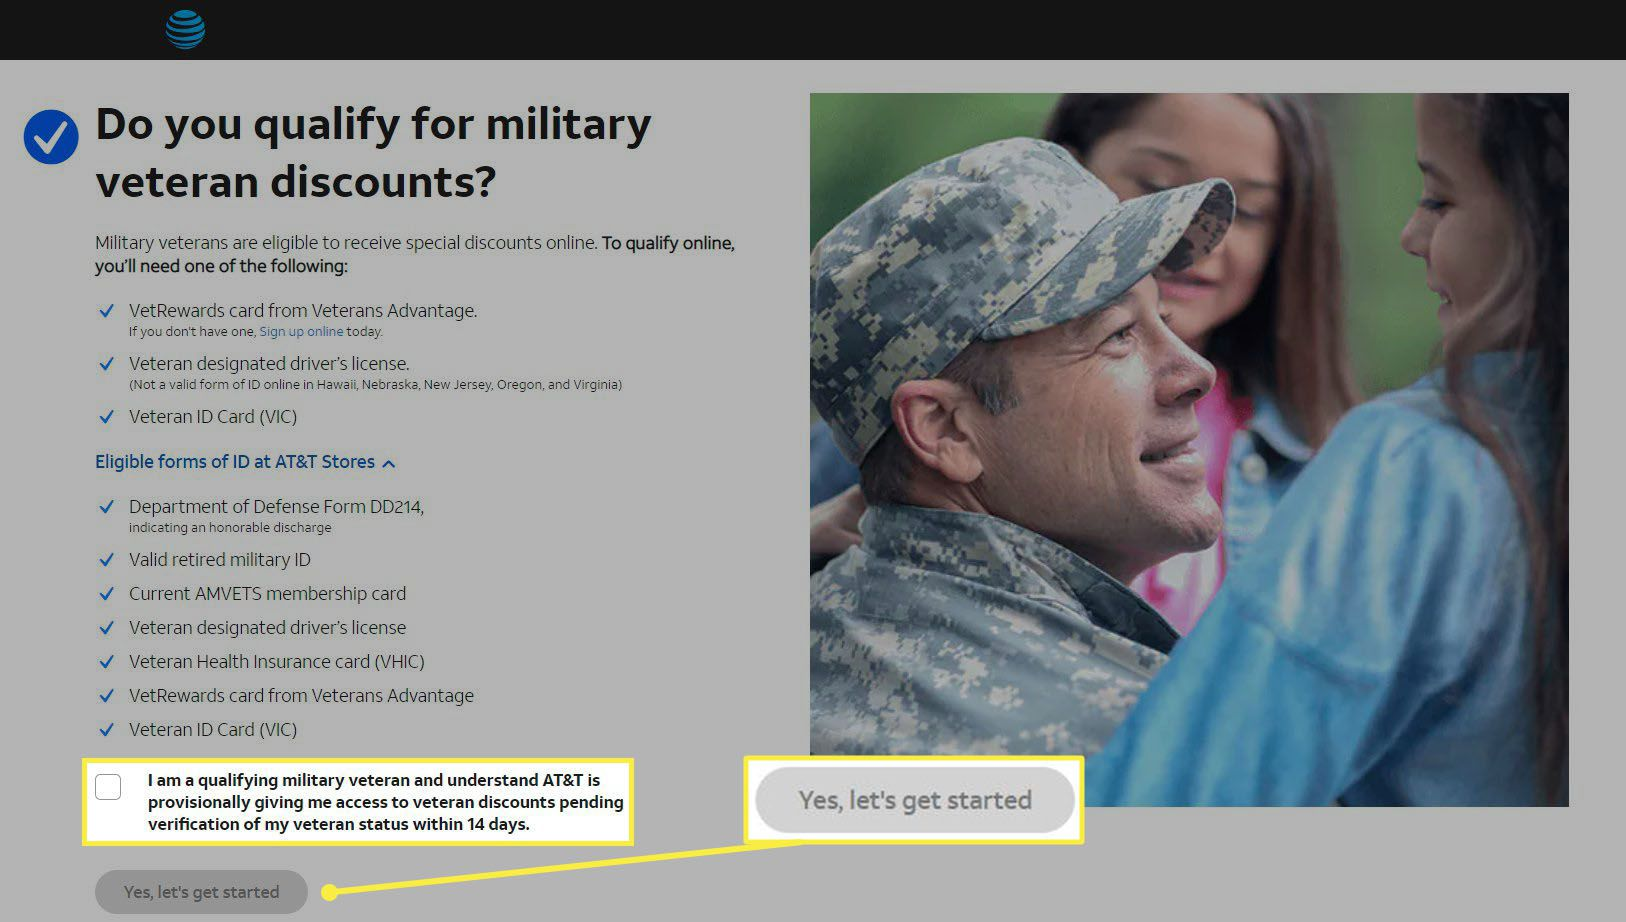 The AT&T veterans discount page showing the Yes, Let's get started button.